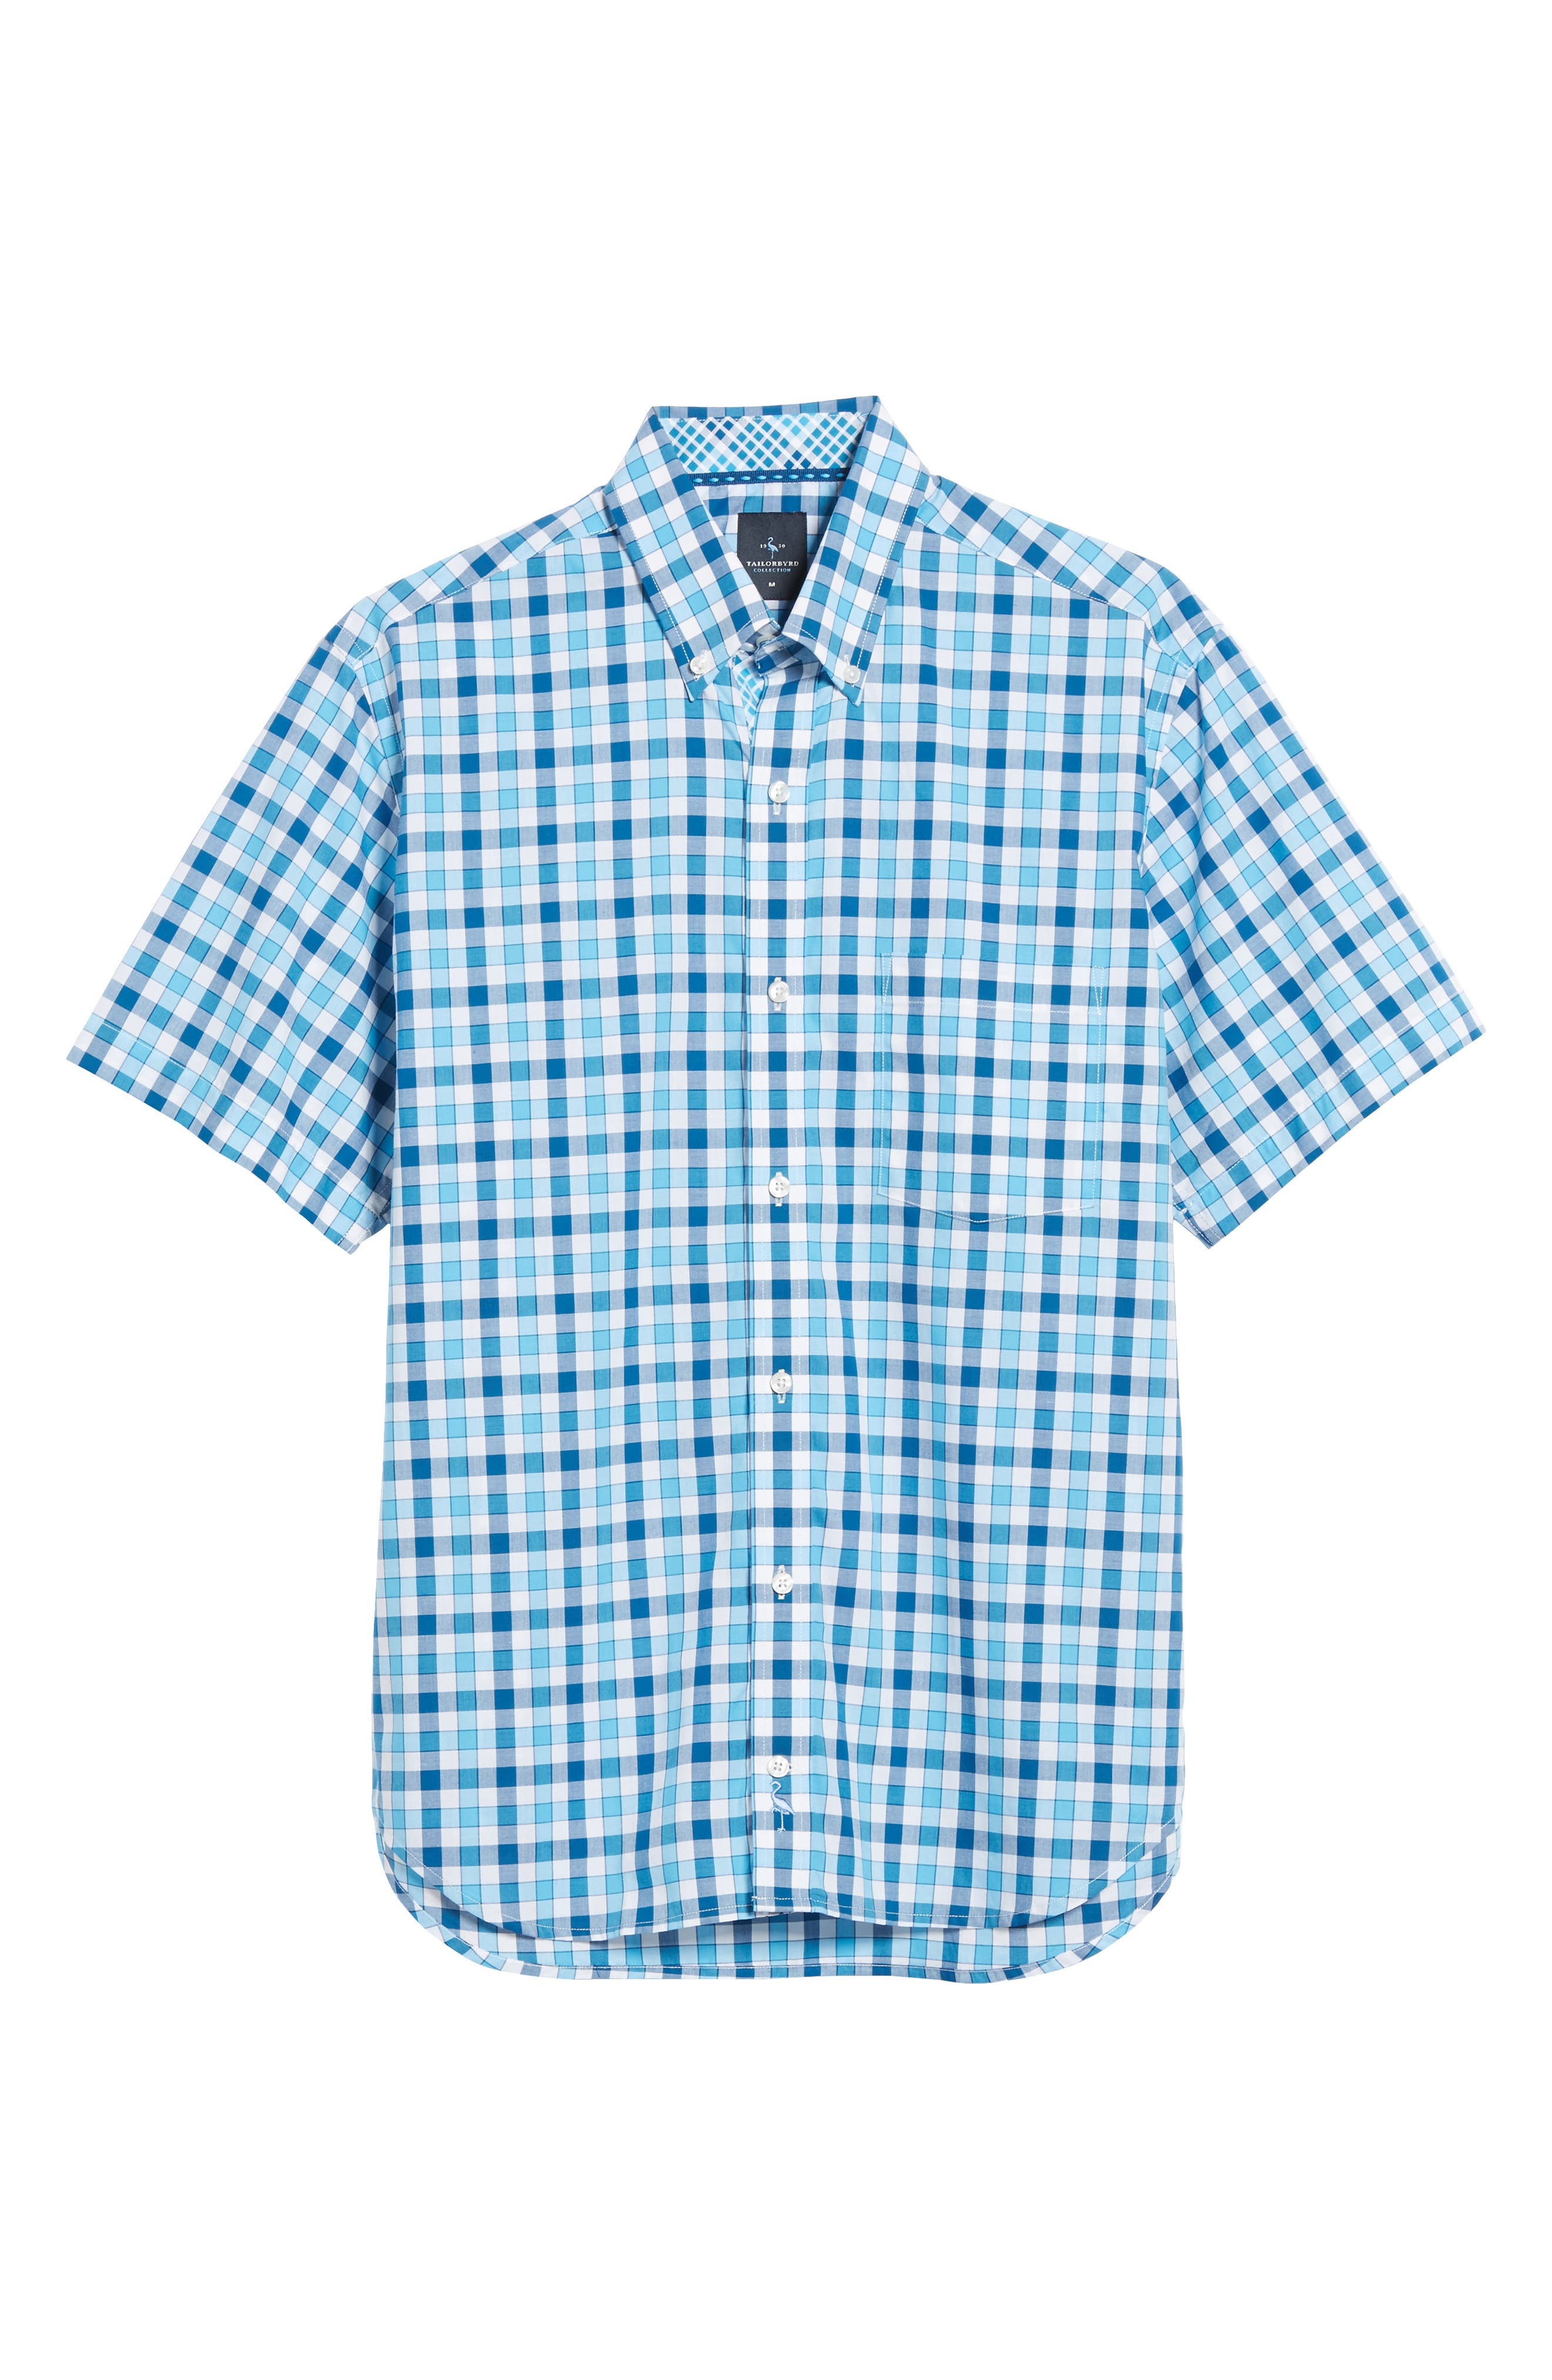 West We Go Regular Fit Plaid Sport Shirt,                             Alternate thumbnail 6, color,                             465